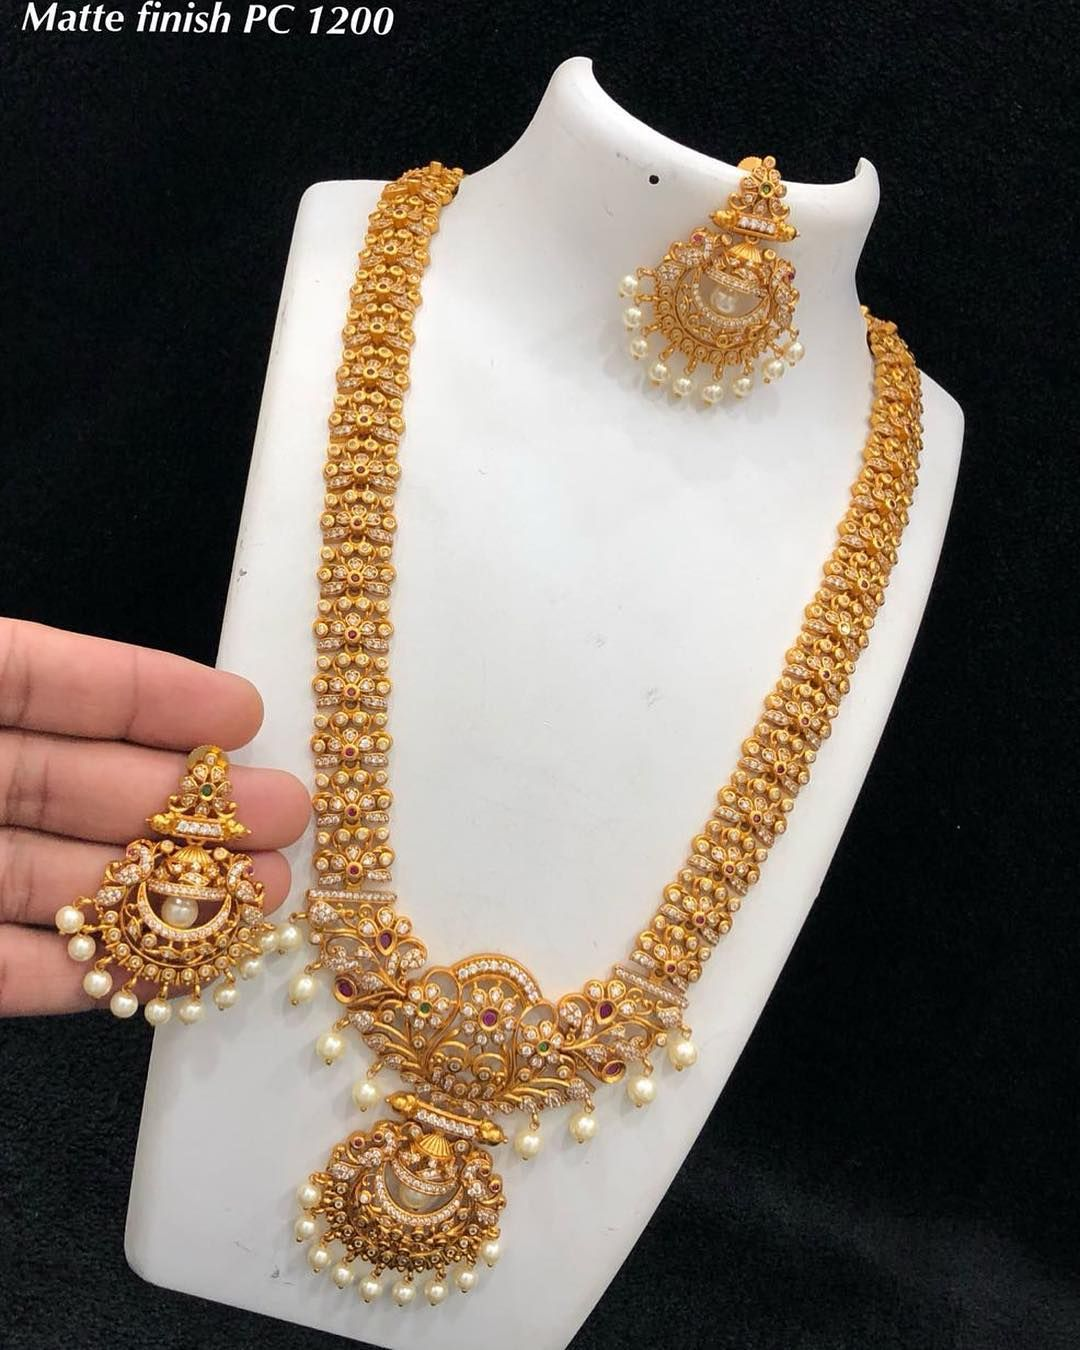 dcfa15b240 PC matt finish jewel at Rs 2750 with shipping 1)Send Direct message to  place order 2)International Shipping is extra 3)All the damage…